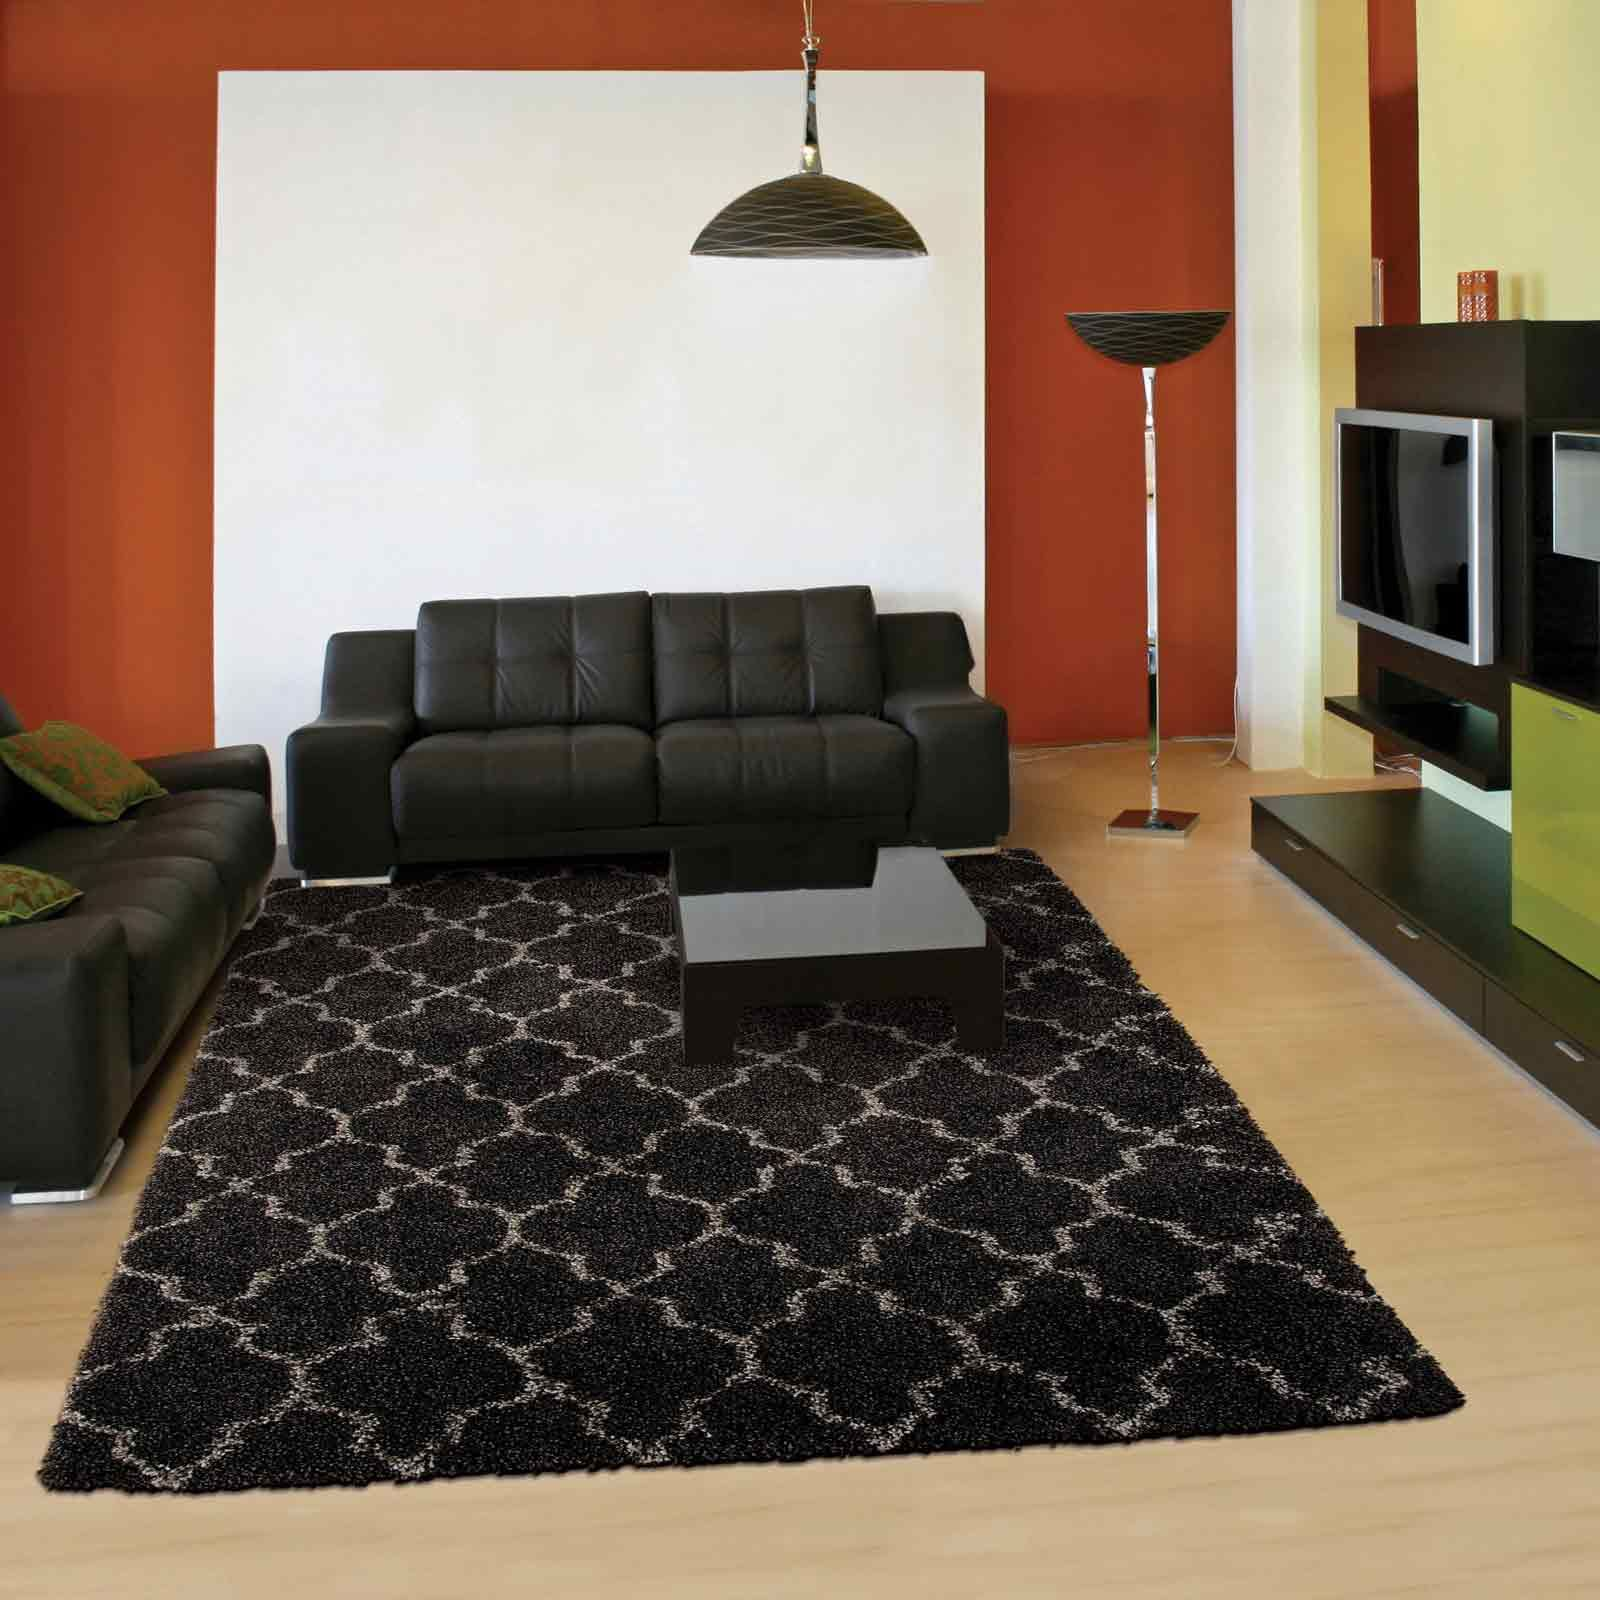 The Charcoal Rug has a trellis design and is available to buy online in two standard rectangular size with huge discounts against High St prices. #HomeStyle #Decor